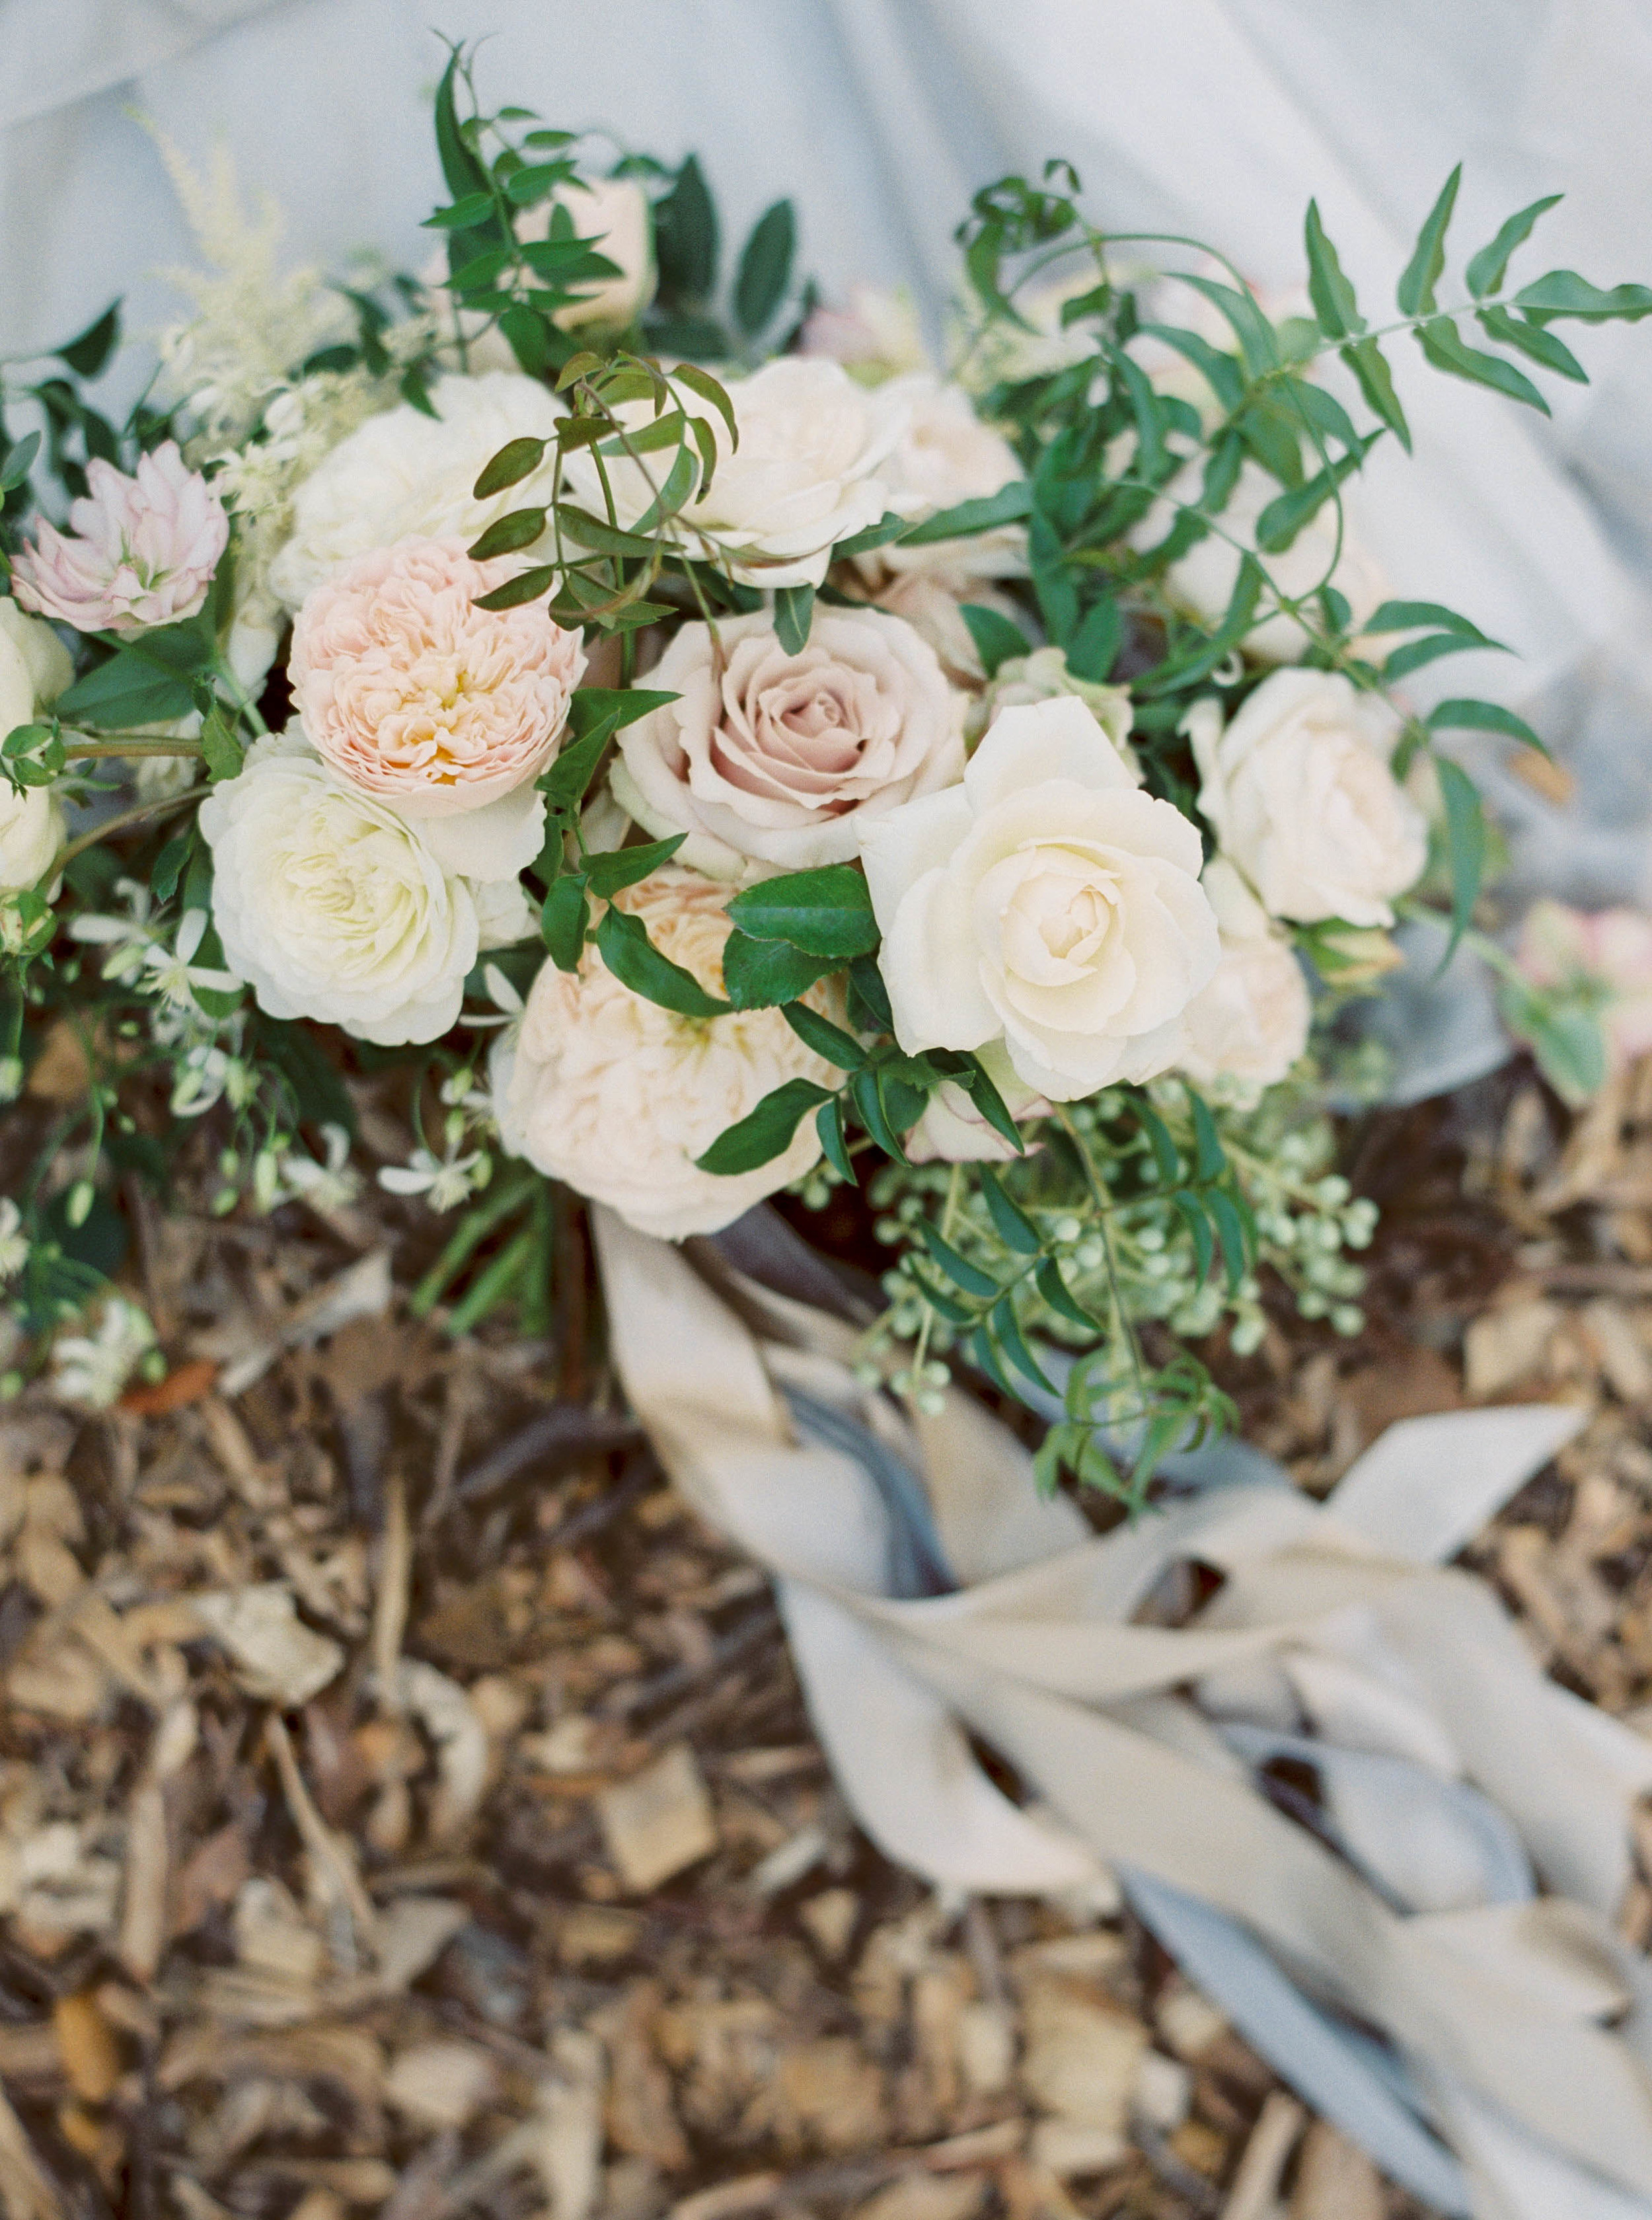 Meghan Mehan Photography - Fine Art Film Photography - San Francisco | Napa | Sonoma | Santa Barbara | Big Sur - 017.jpg